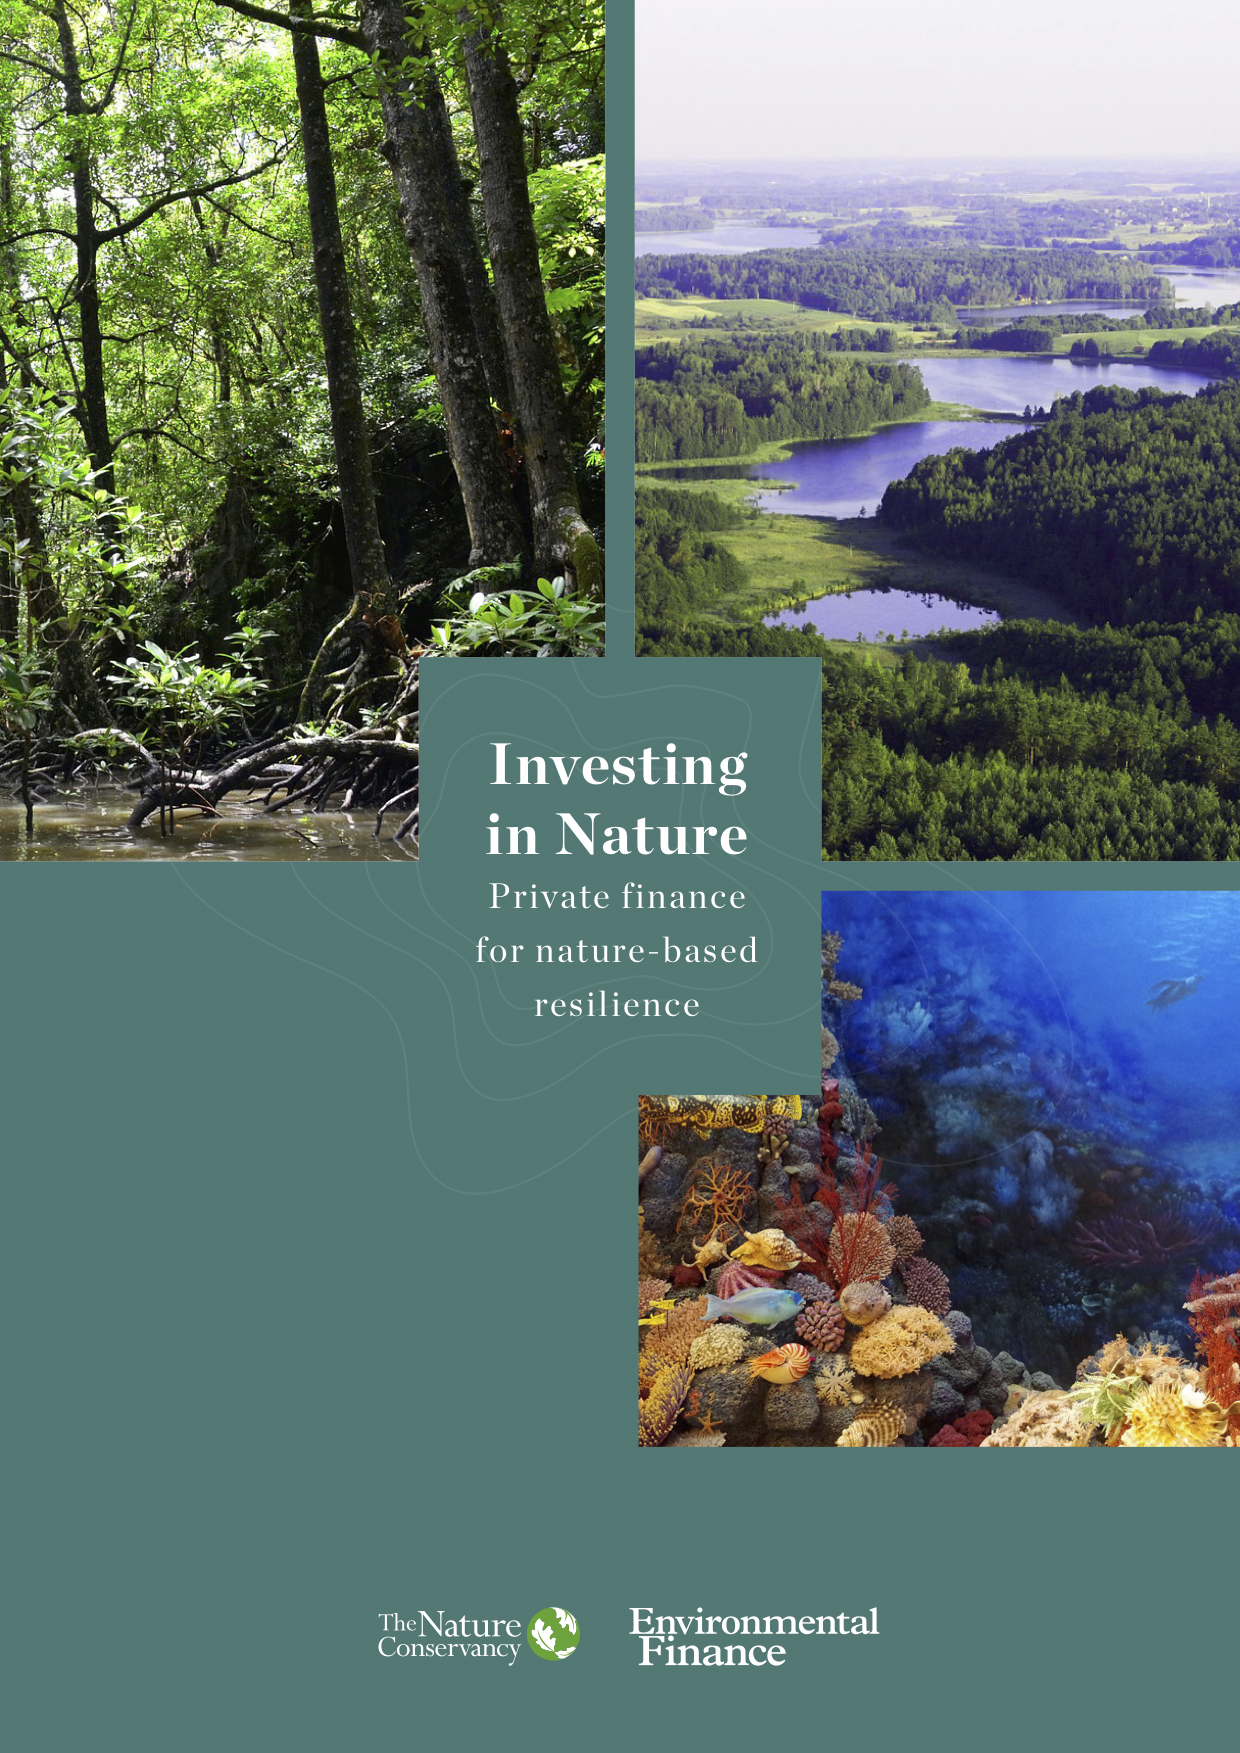 Investing in Nature: Private finance for nature-based resilience